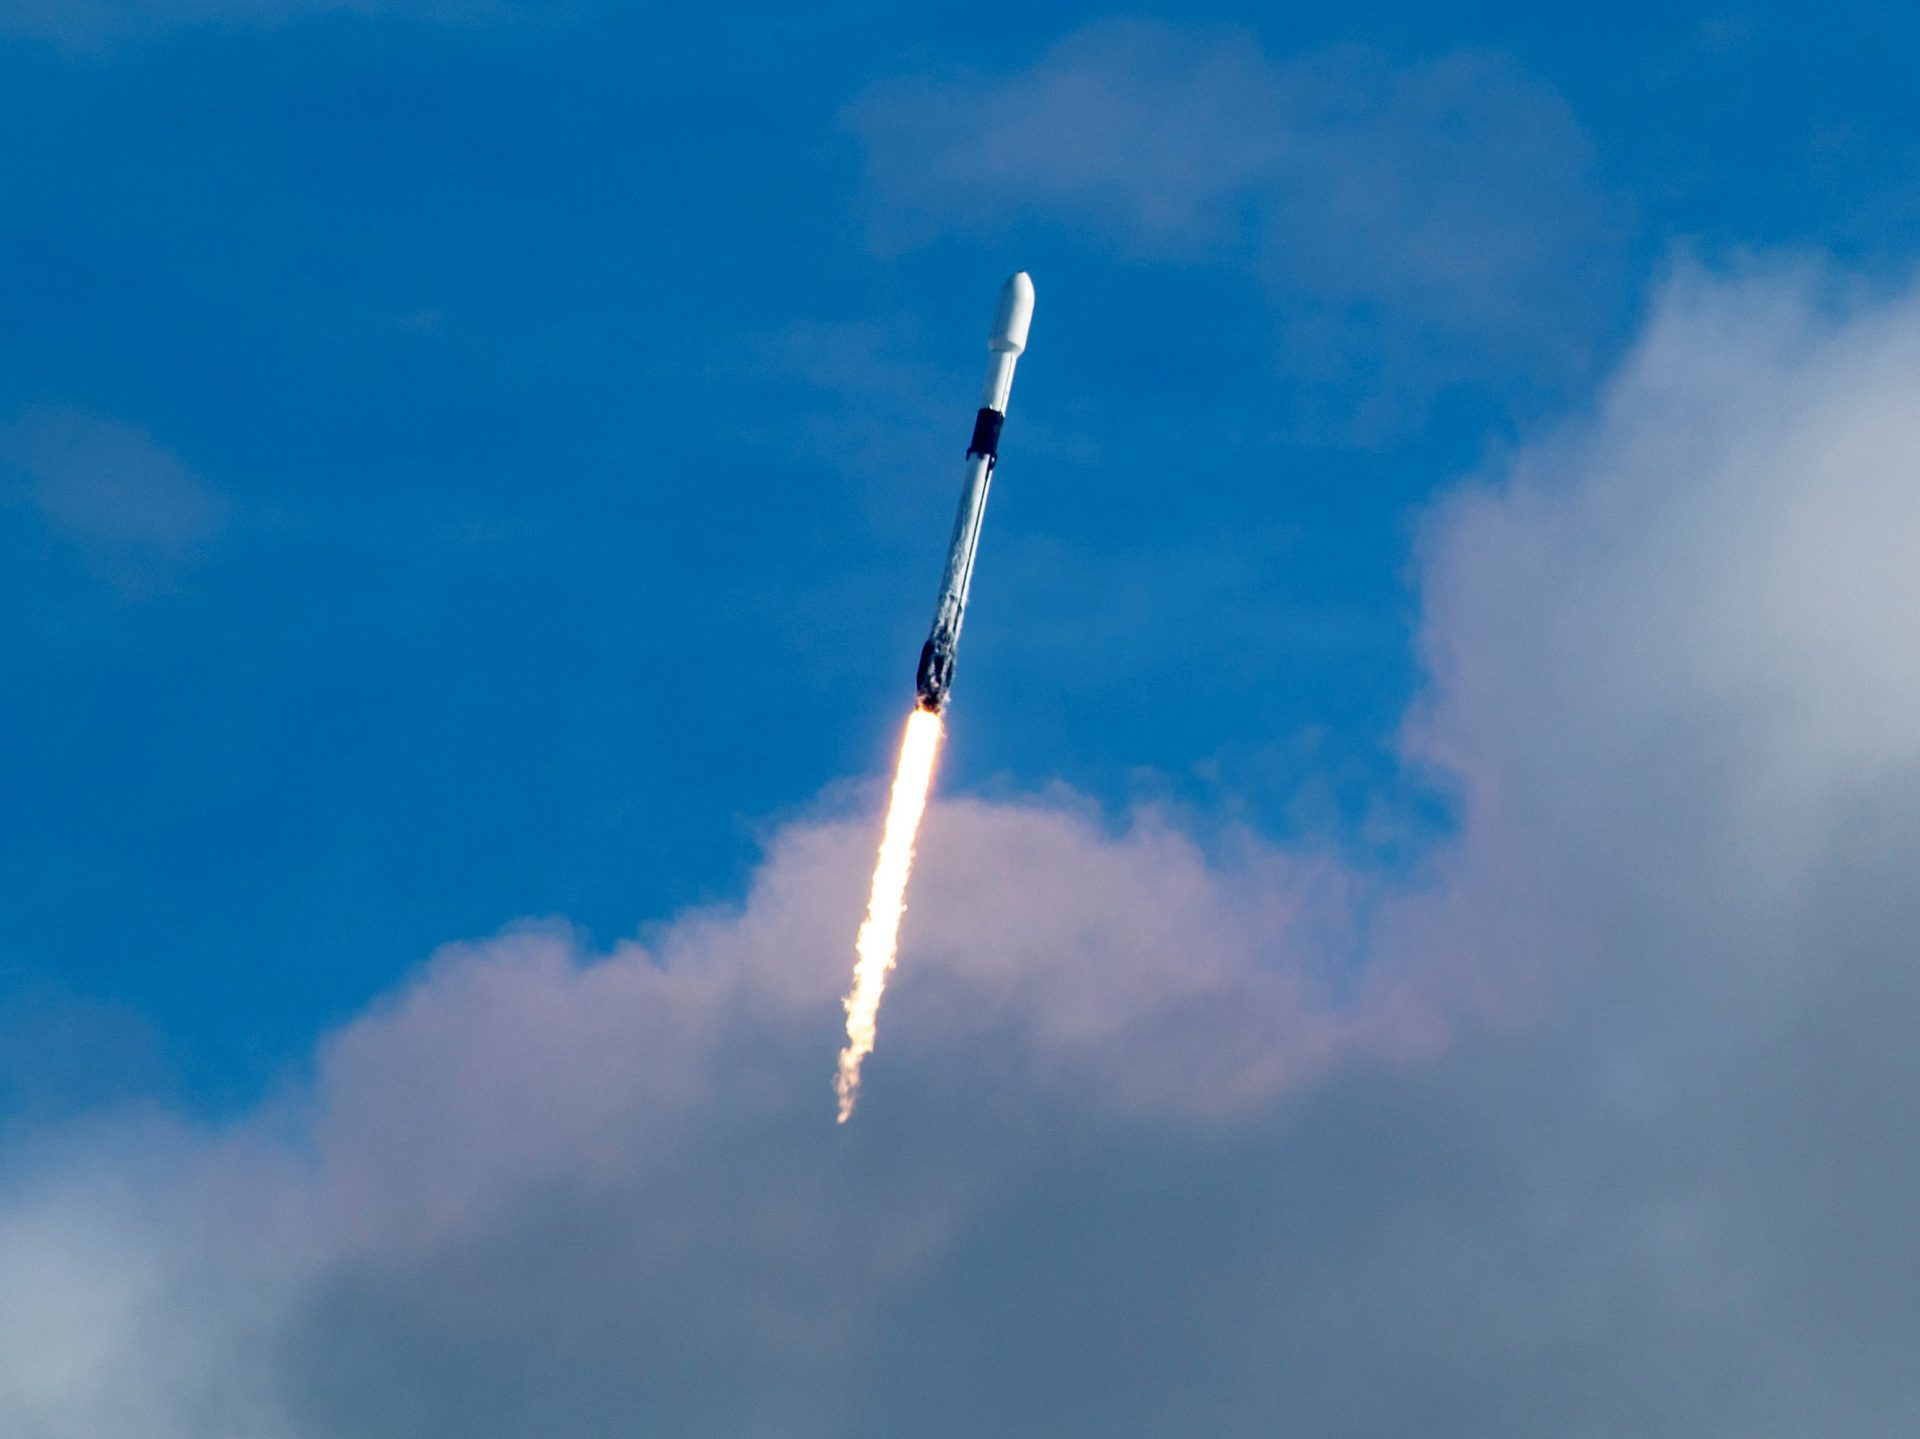 Record breaker! 143 satellites carried by SpaceX Falcon 9 was most ever launched on single rocket